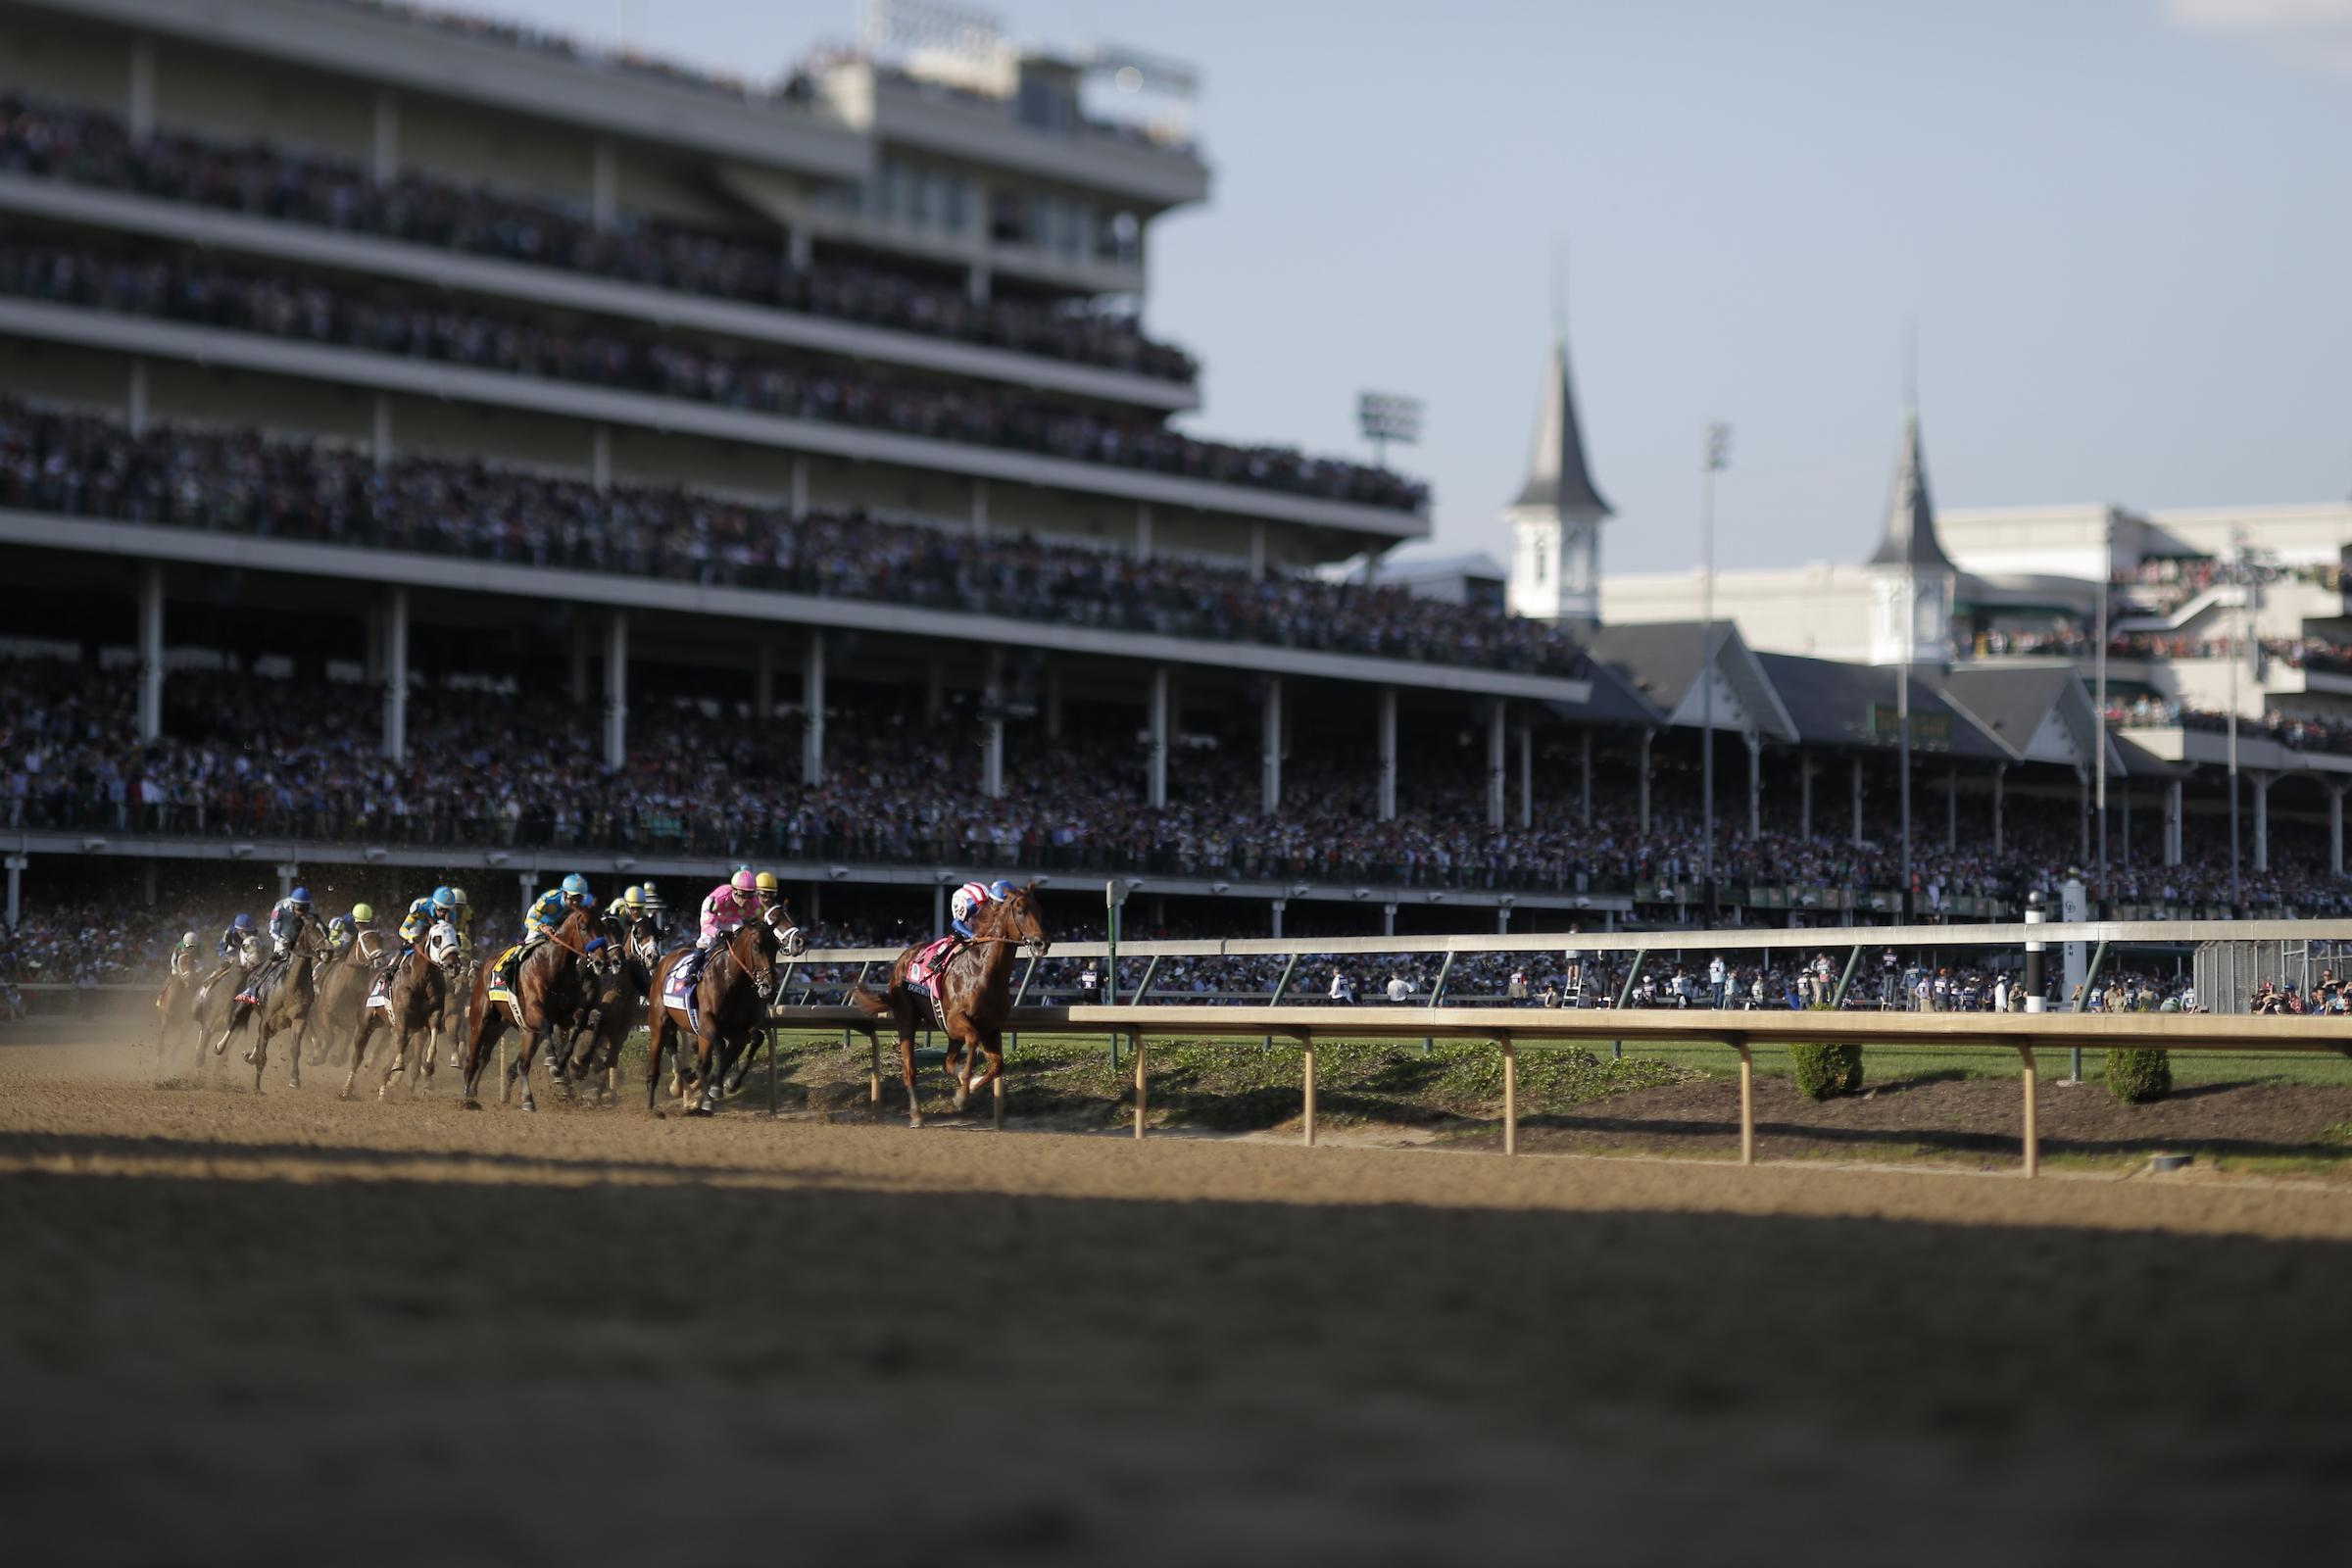 Kentucky Derby first turn Churchill Downs American Pharoah